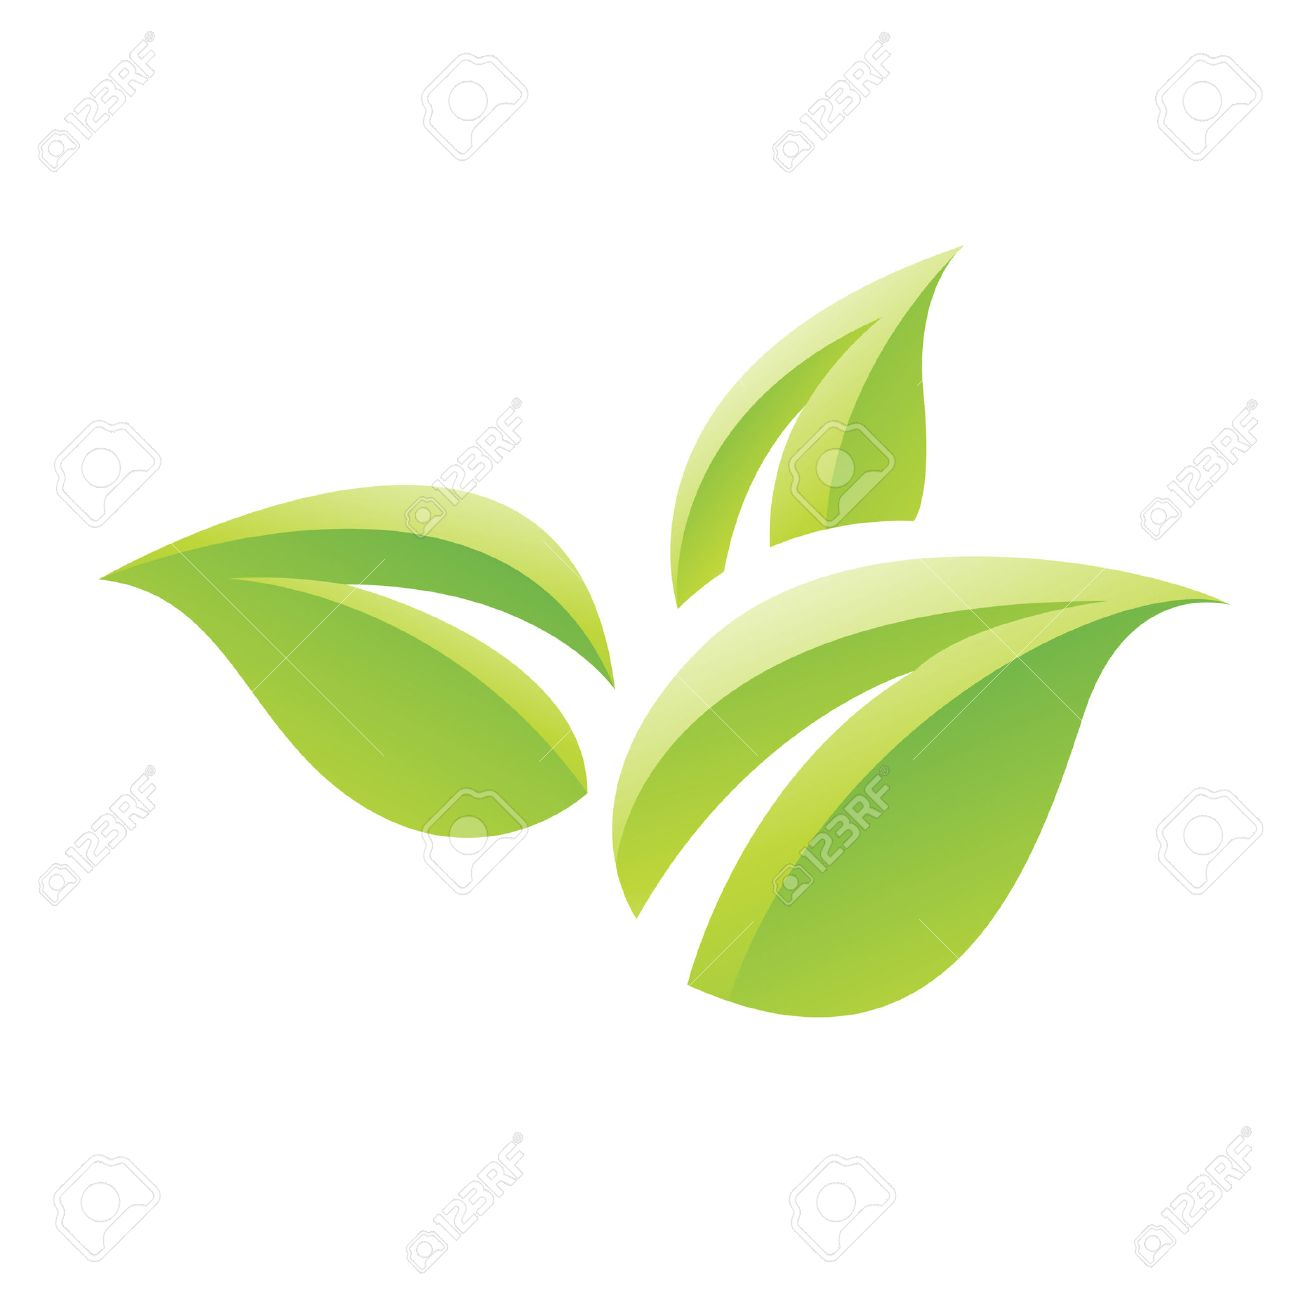 Illustration of Green Glossy Leaves Icon isolated on a white background - 23638035